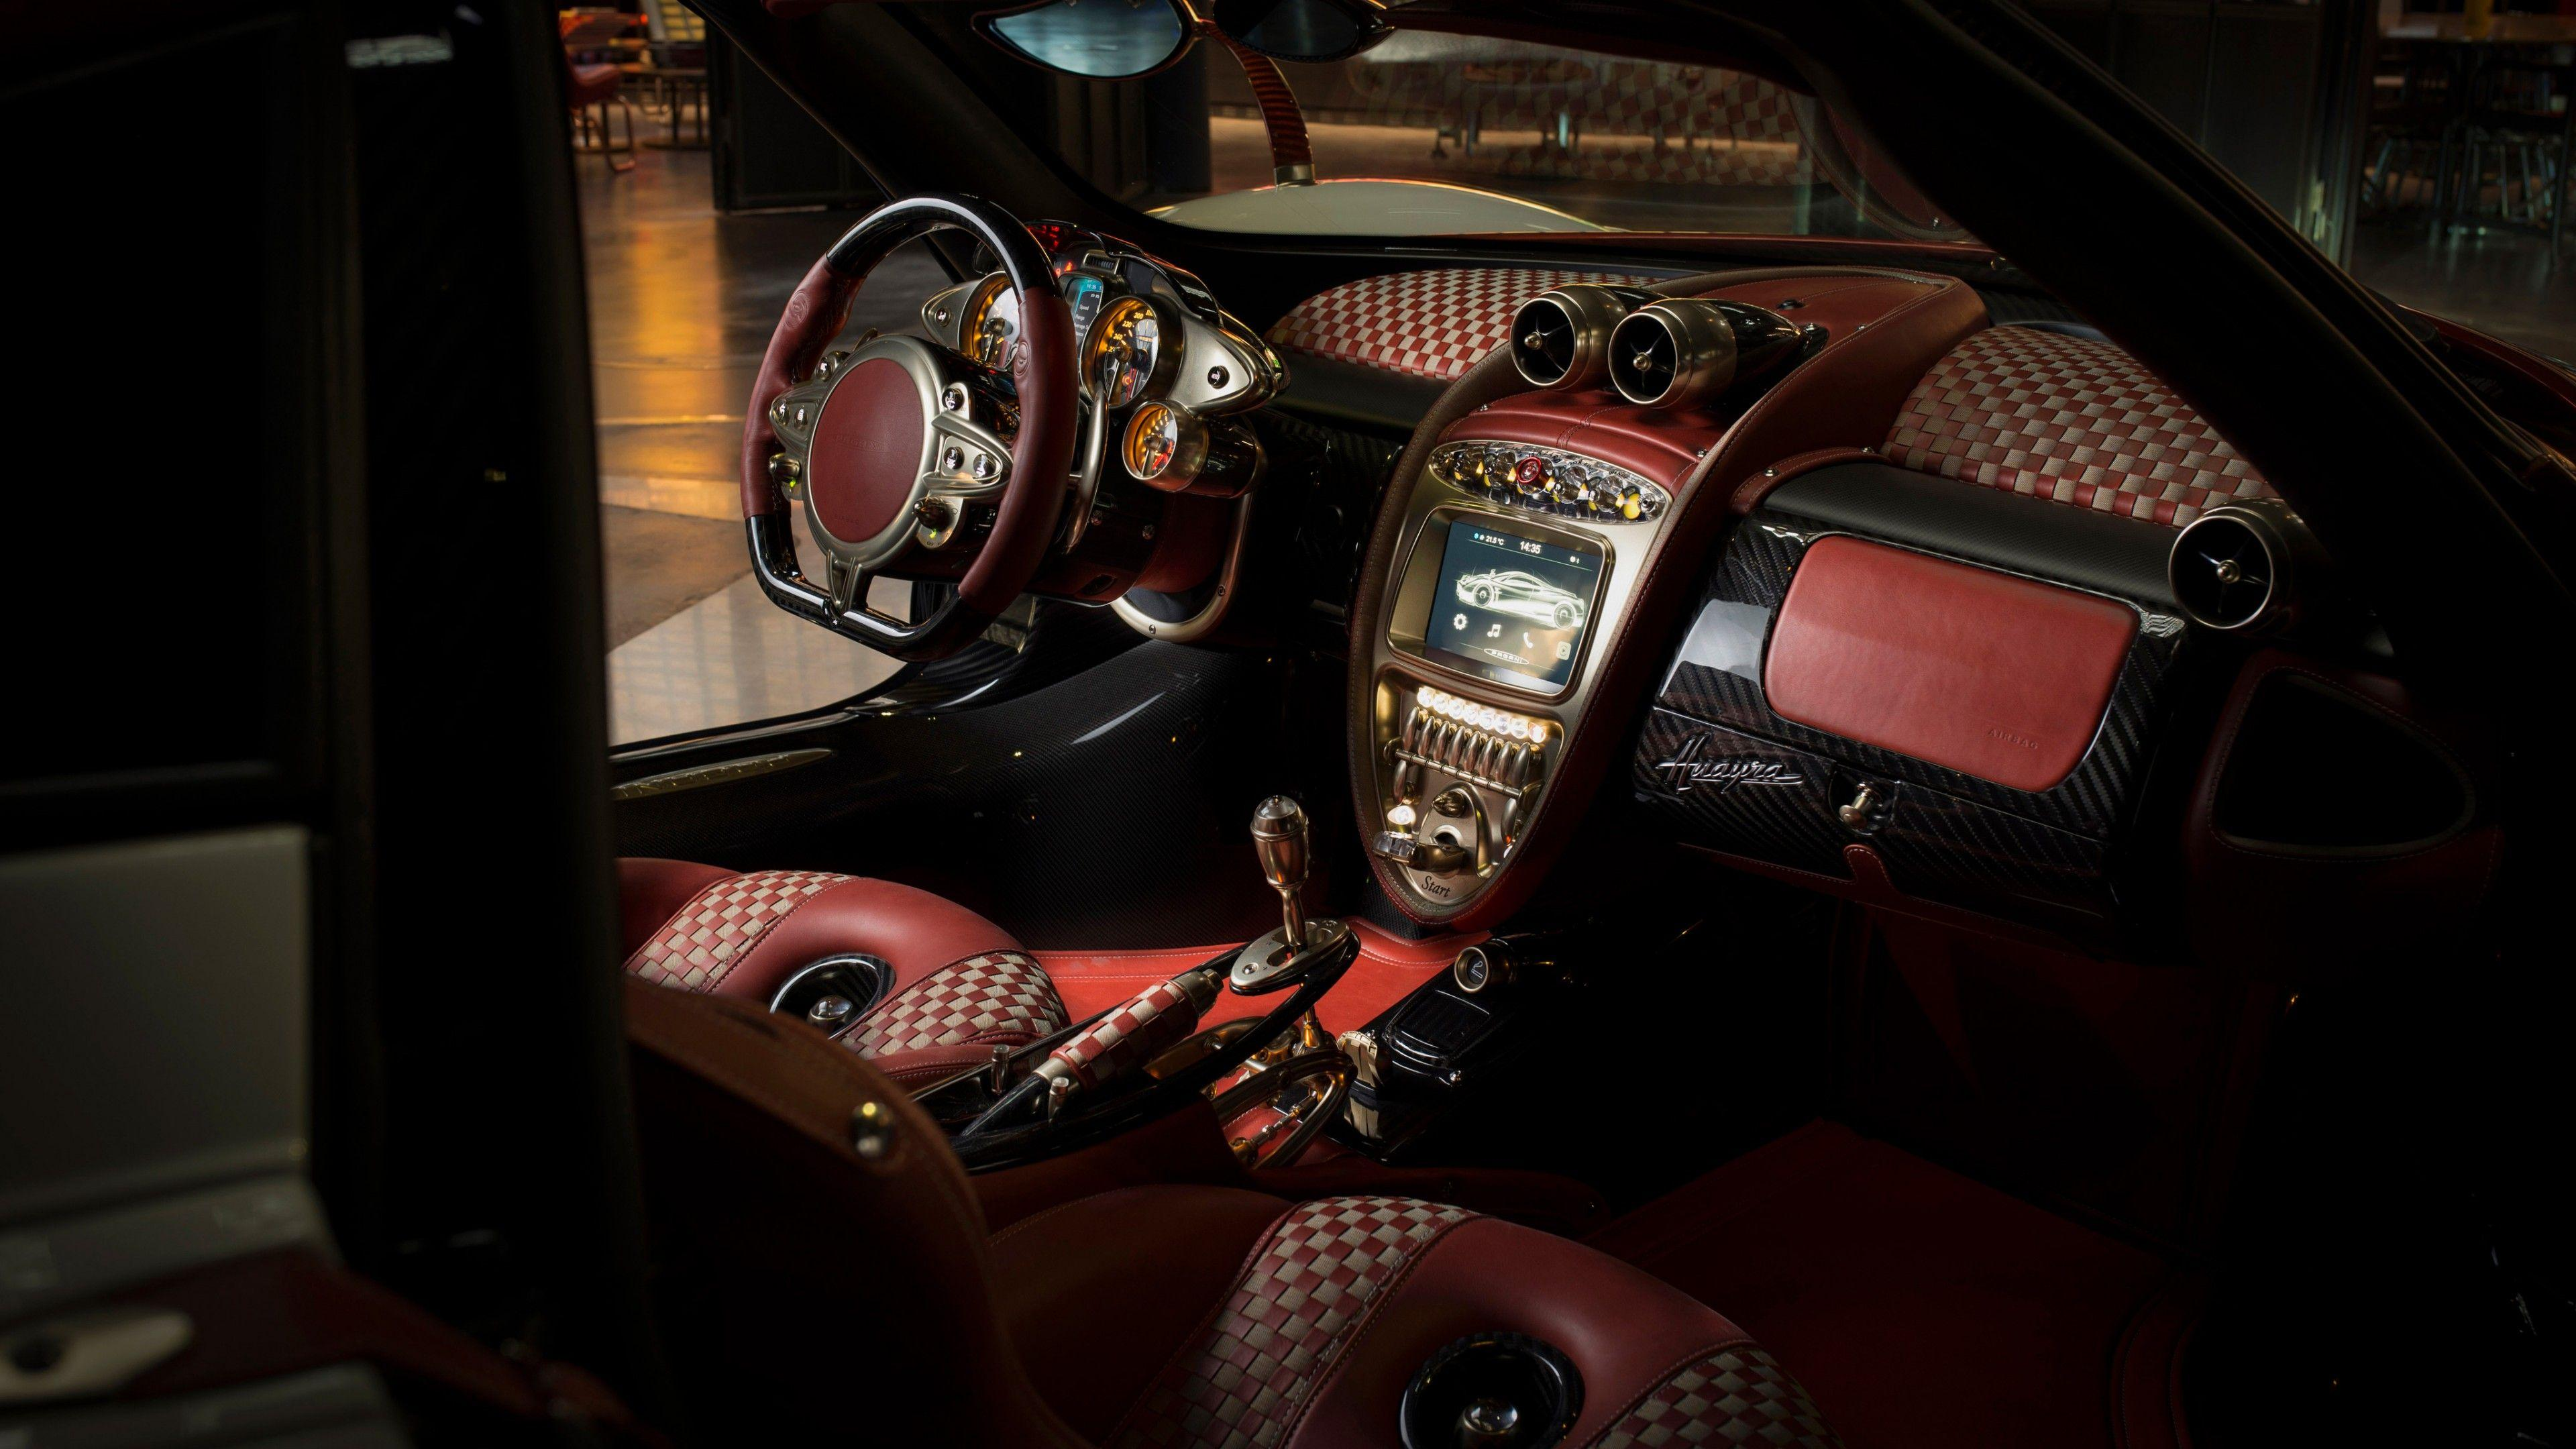 Wallpapers Pagani Huayra Lampo, interior, 4k, Cars & Bikes